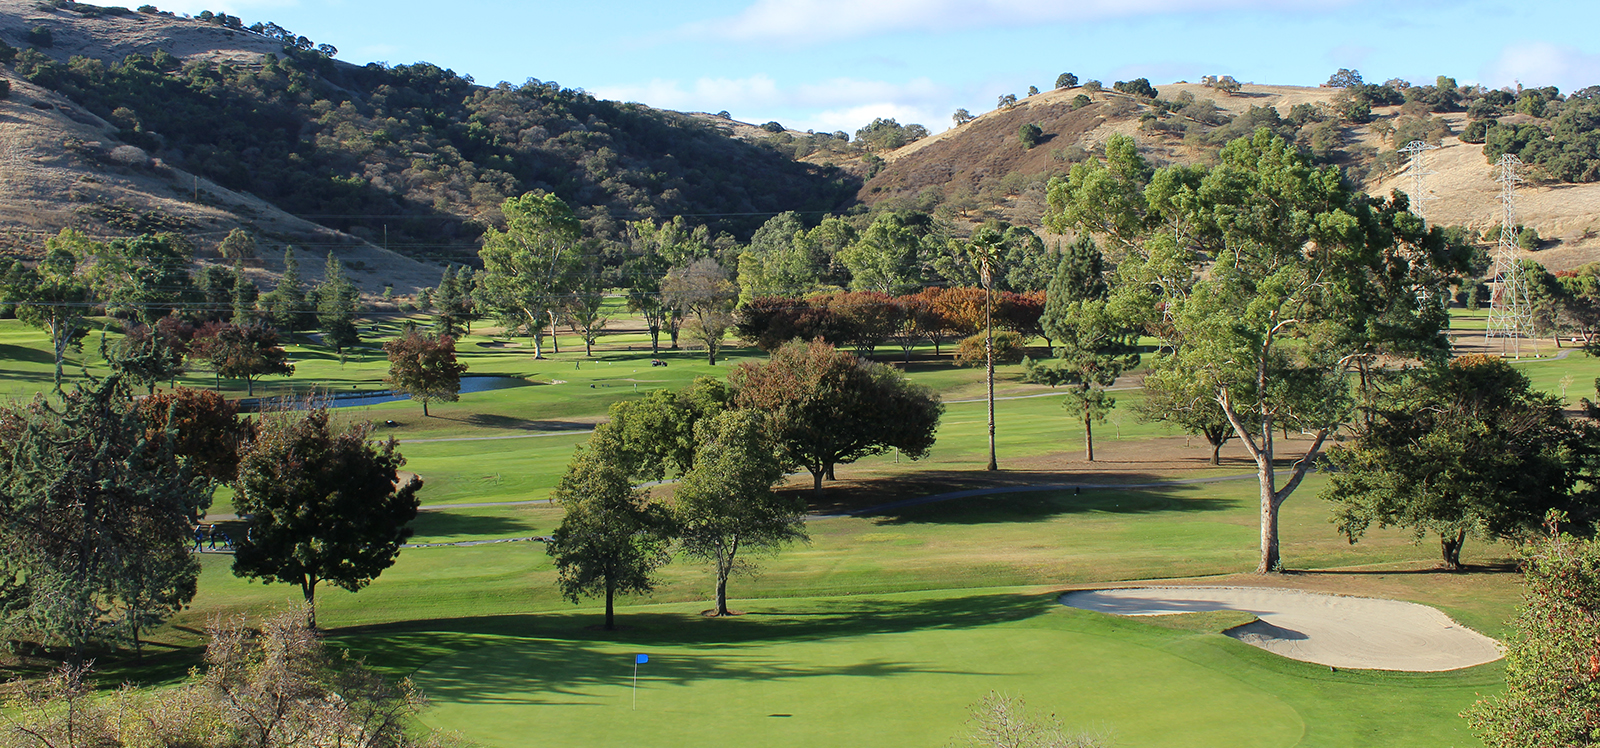 golf course at Santa Teresa Golf Club